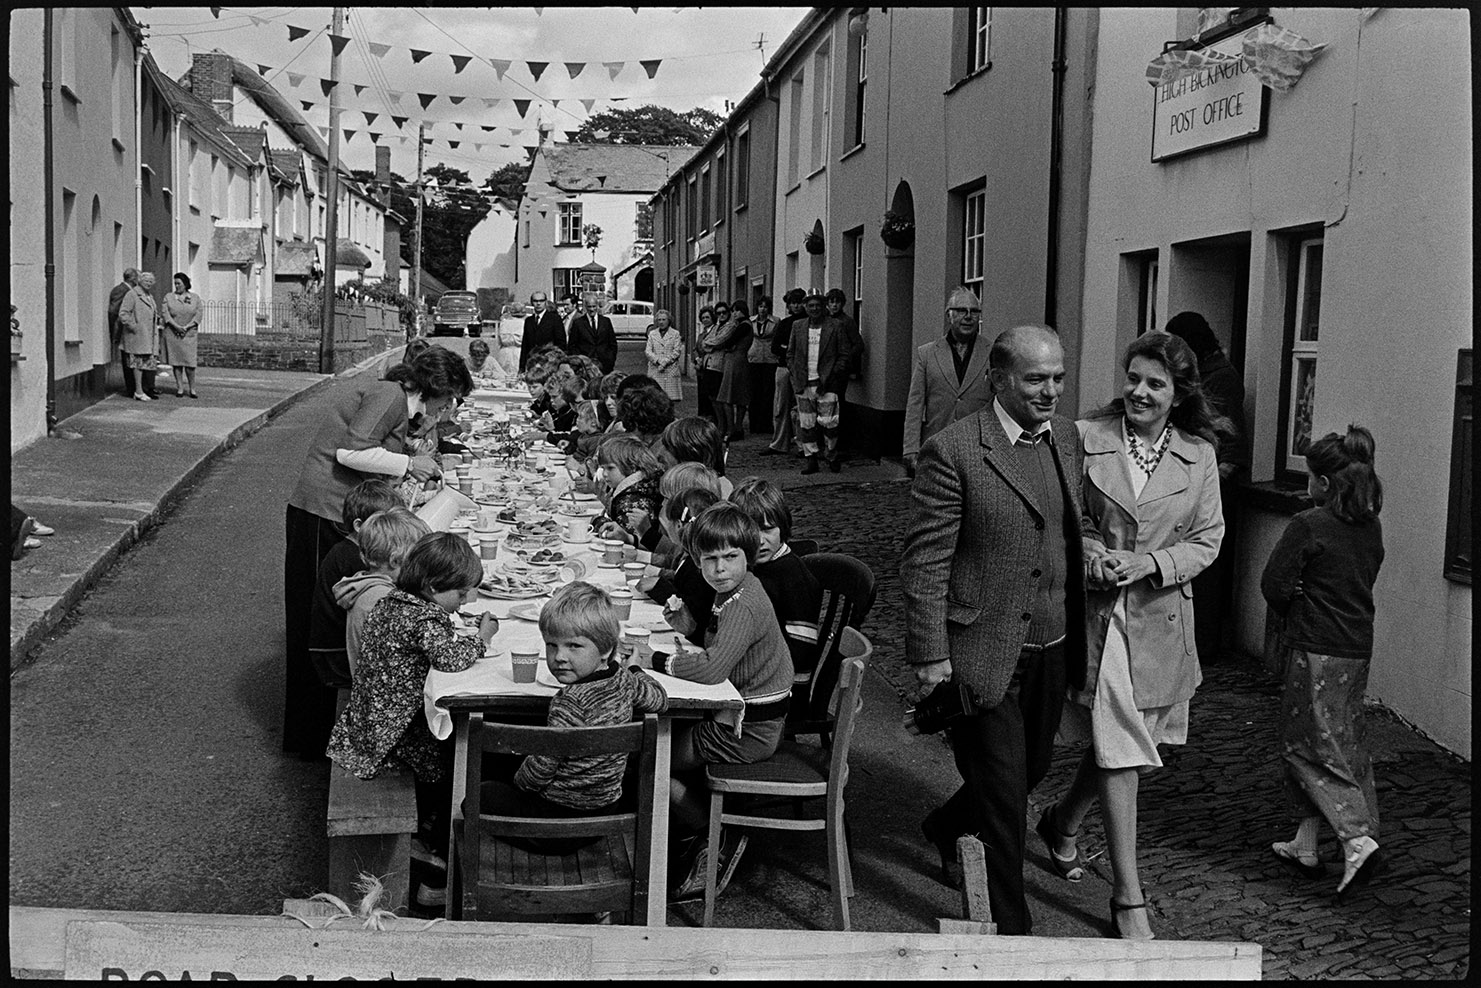 Children's tea in village street, Jubilee time, High Bickington, June 1977. Documentary photograph by James Ravilious for the Beaford Archive © Beaford Arts